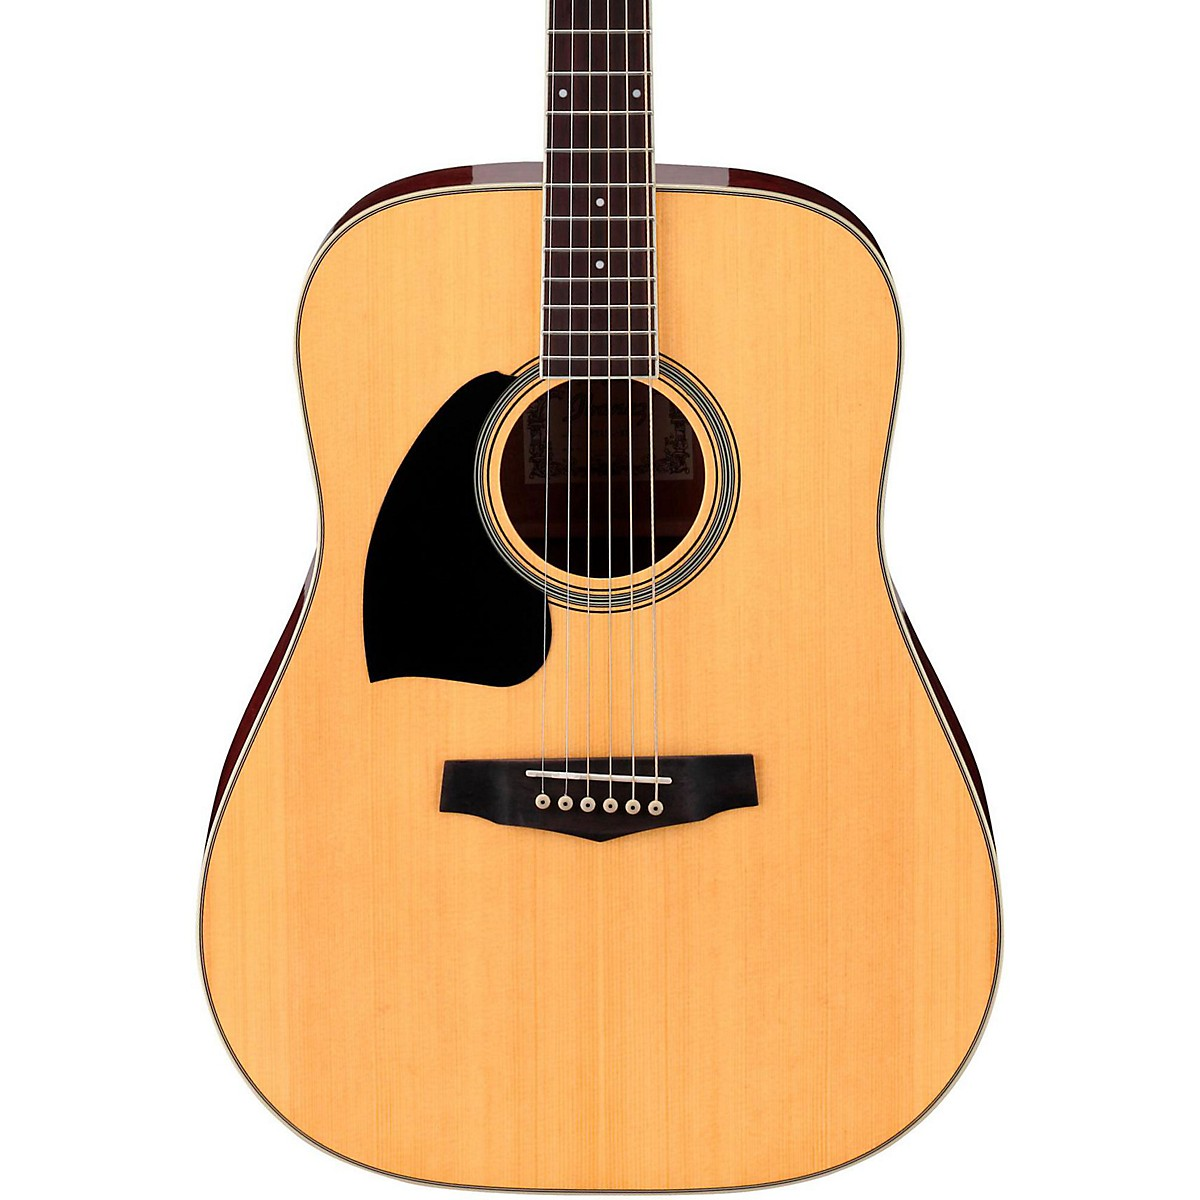 Ibanez Performance Series PF15 Left Handed Dreadnought Acoustic Guitar